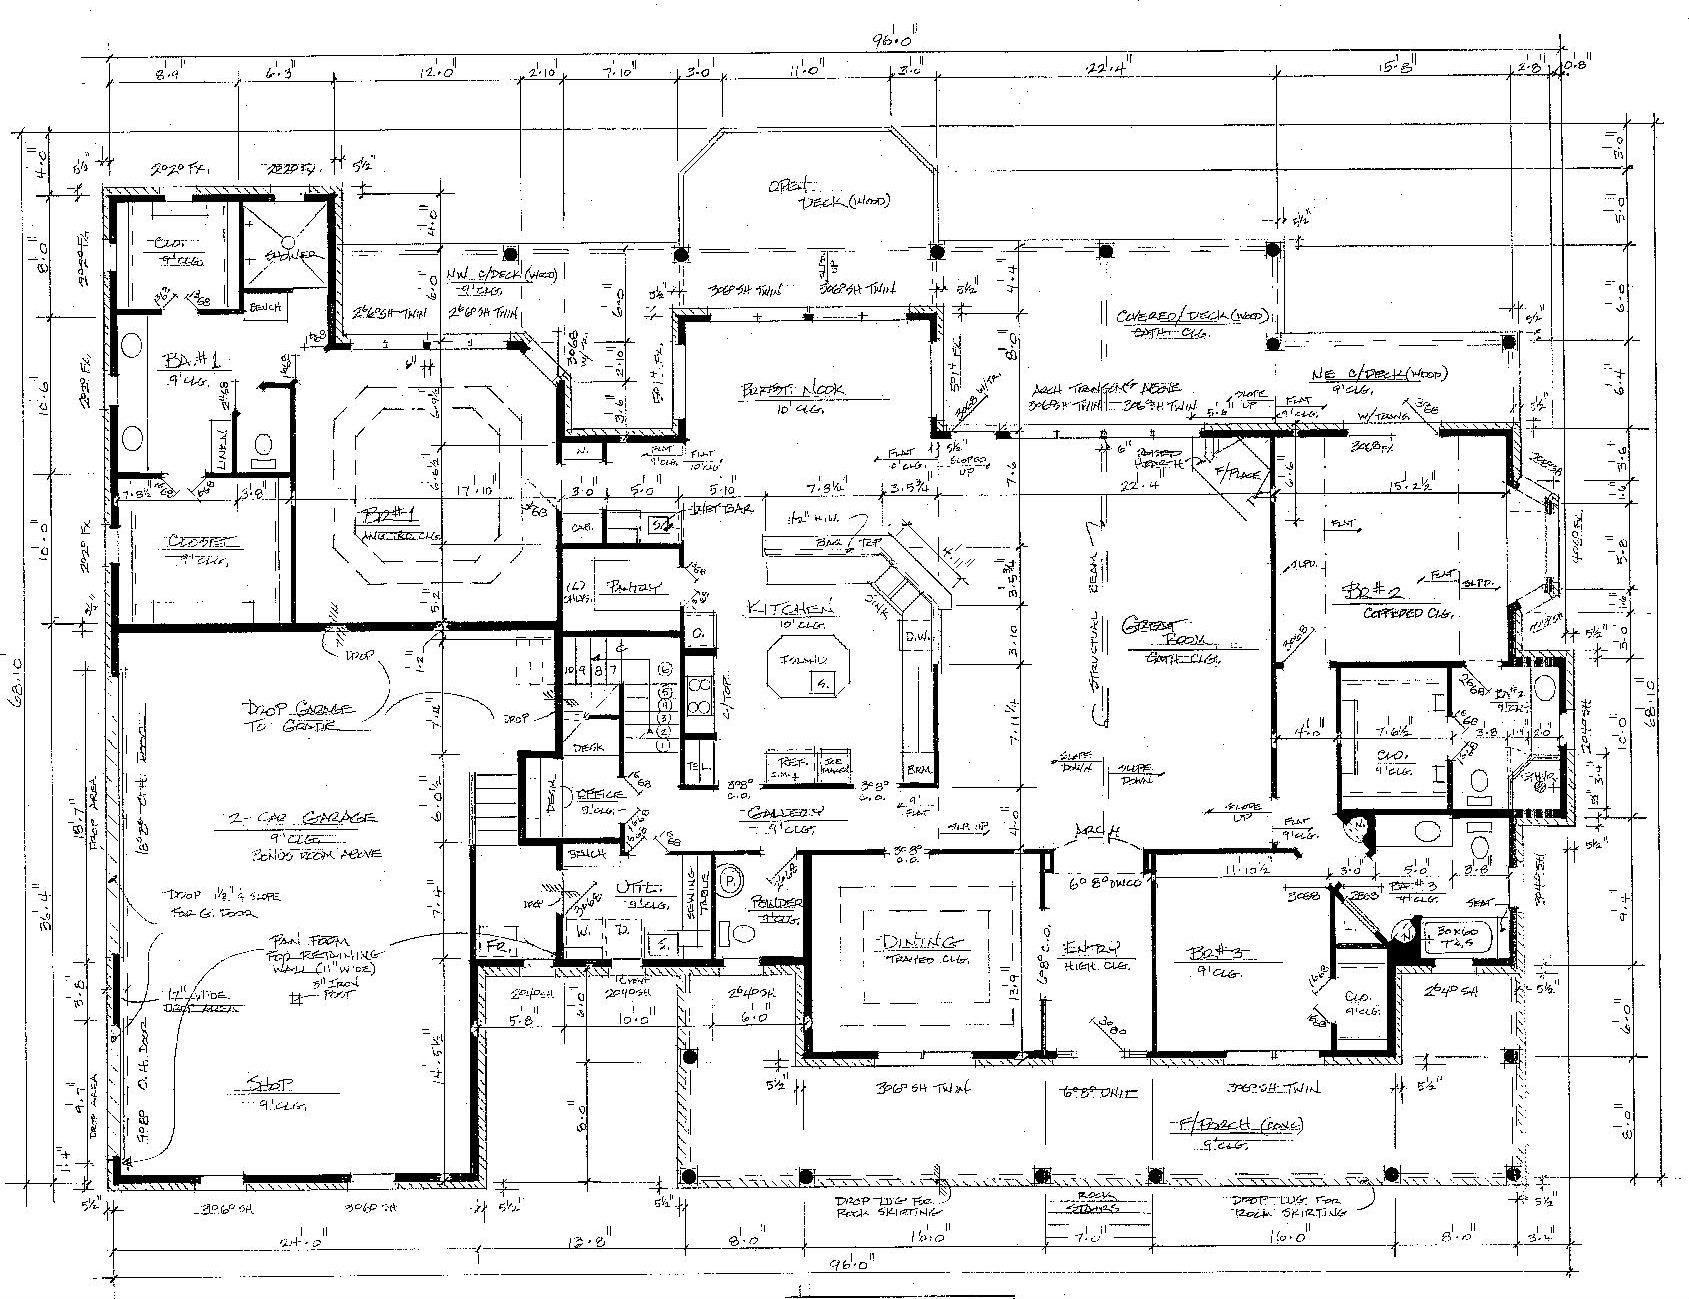 Architecture House Design Drawing Home Remodeling And Best Free Idea Inspiration drawing house plans simple decoration architecture design ideas